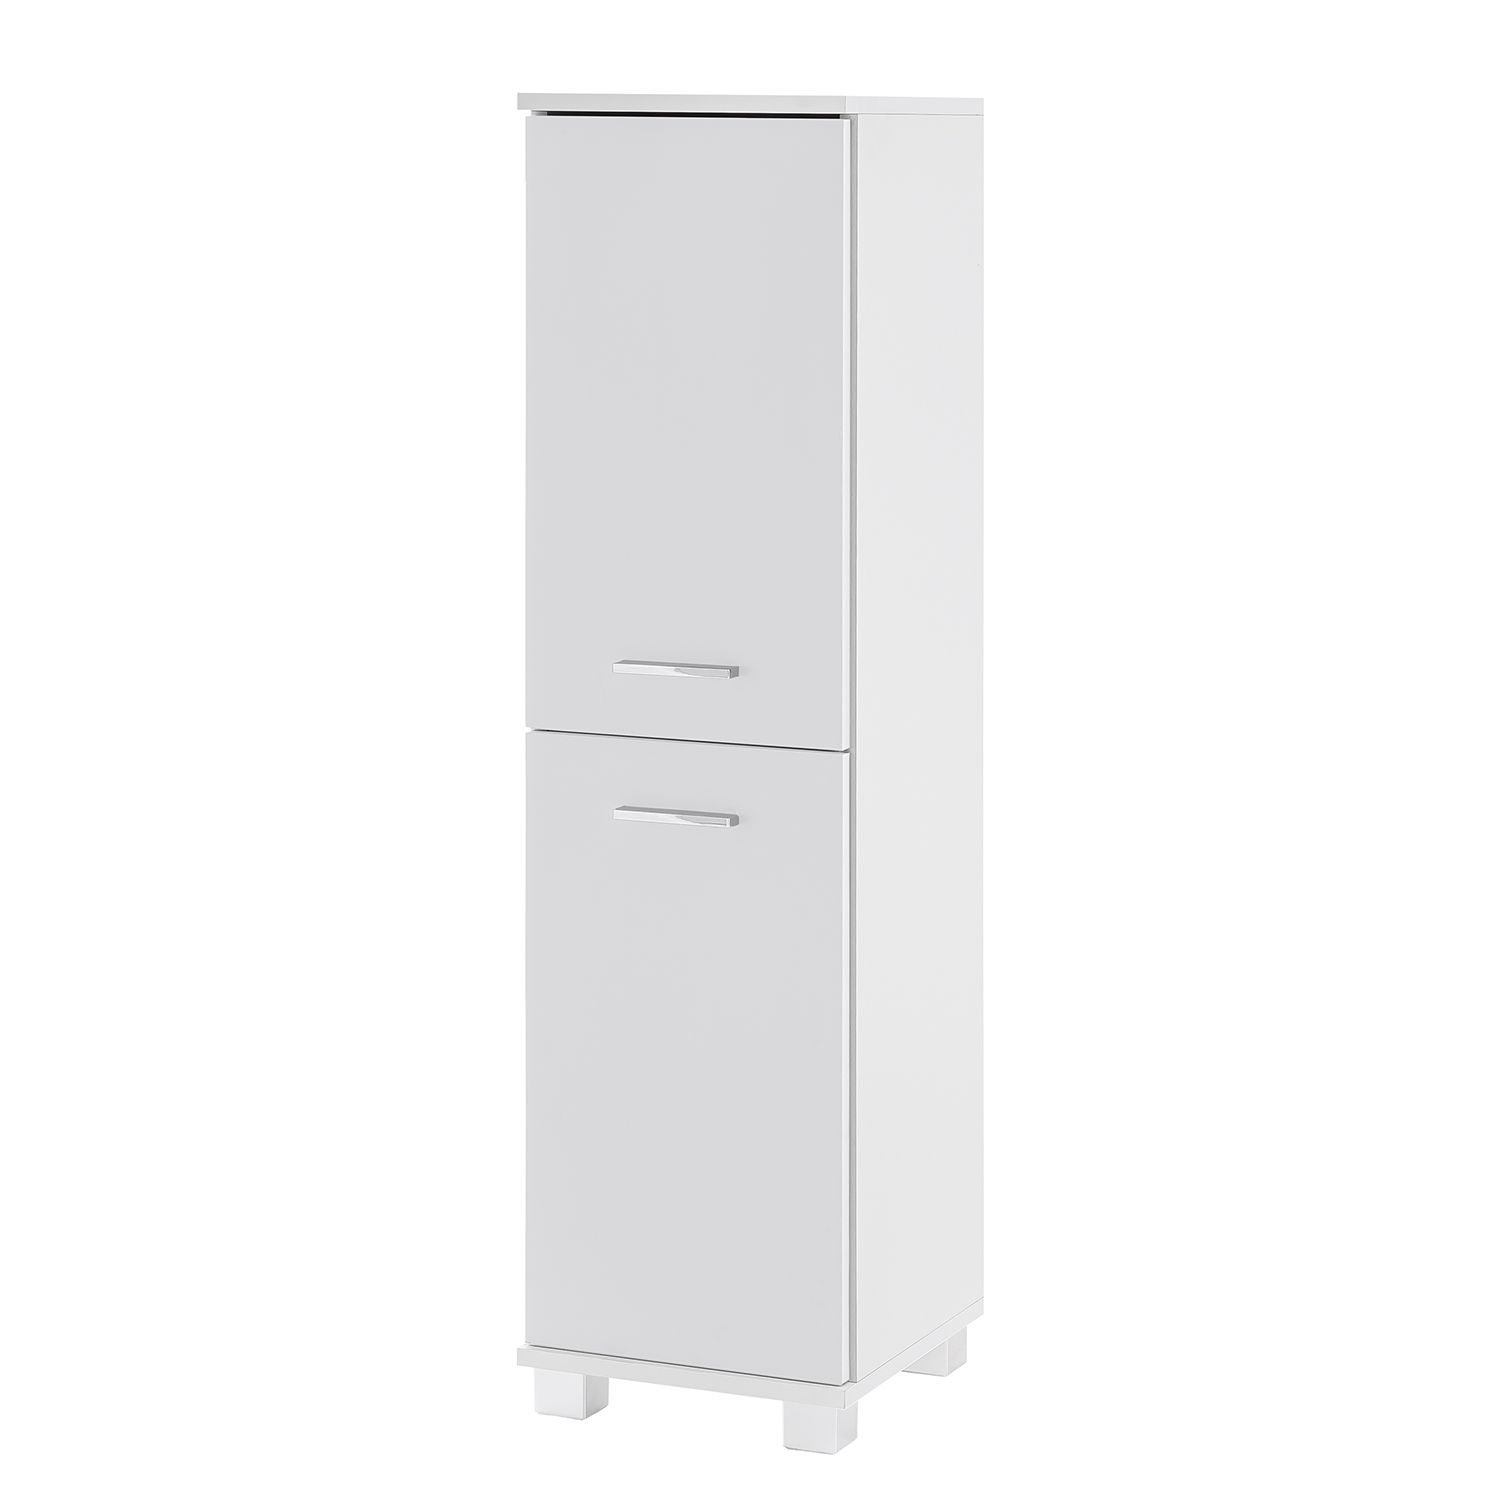 Pin By Ladendirekt On Badmobel Locker Storage Storage Cabinets Cabinet Furniture